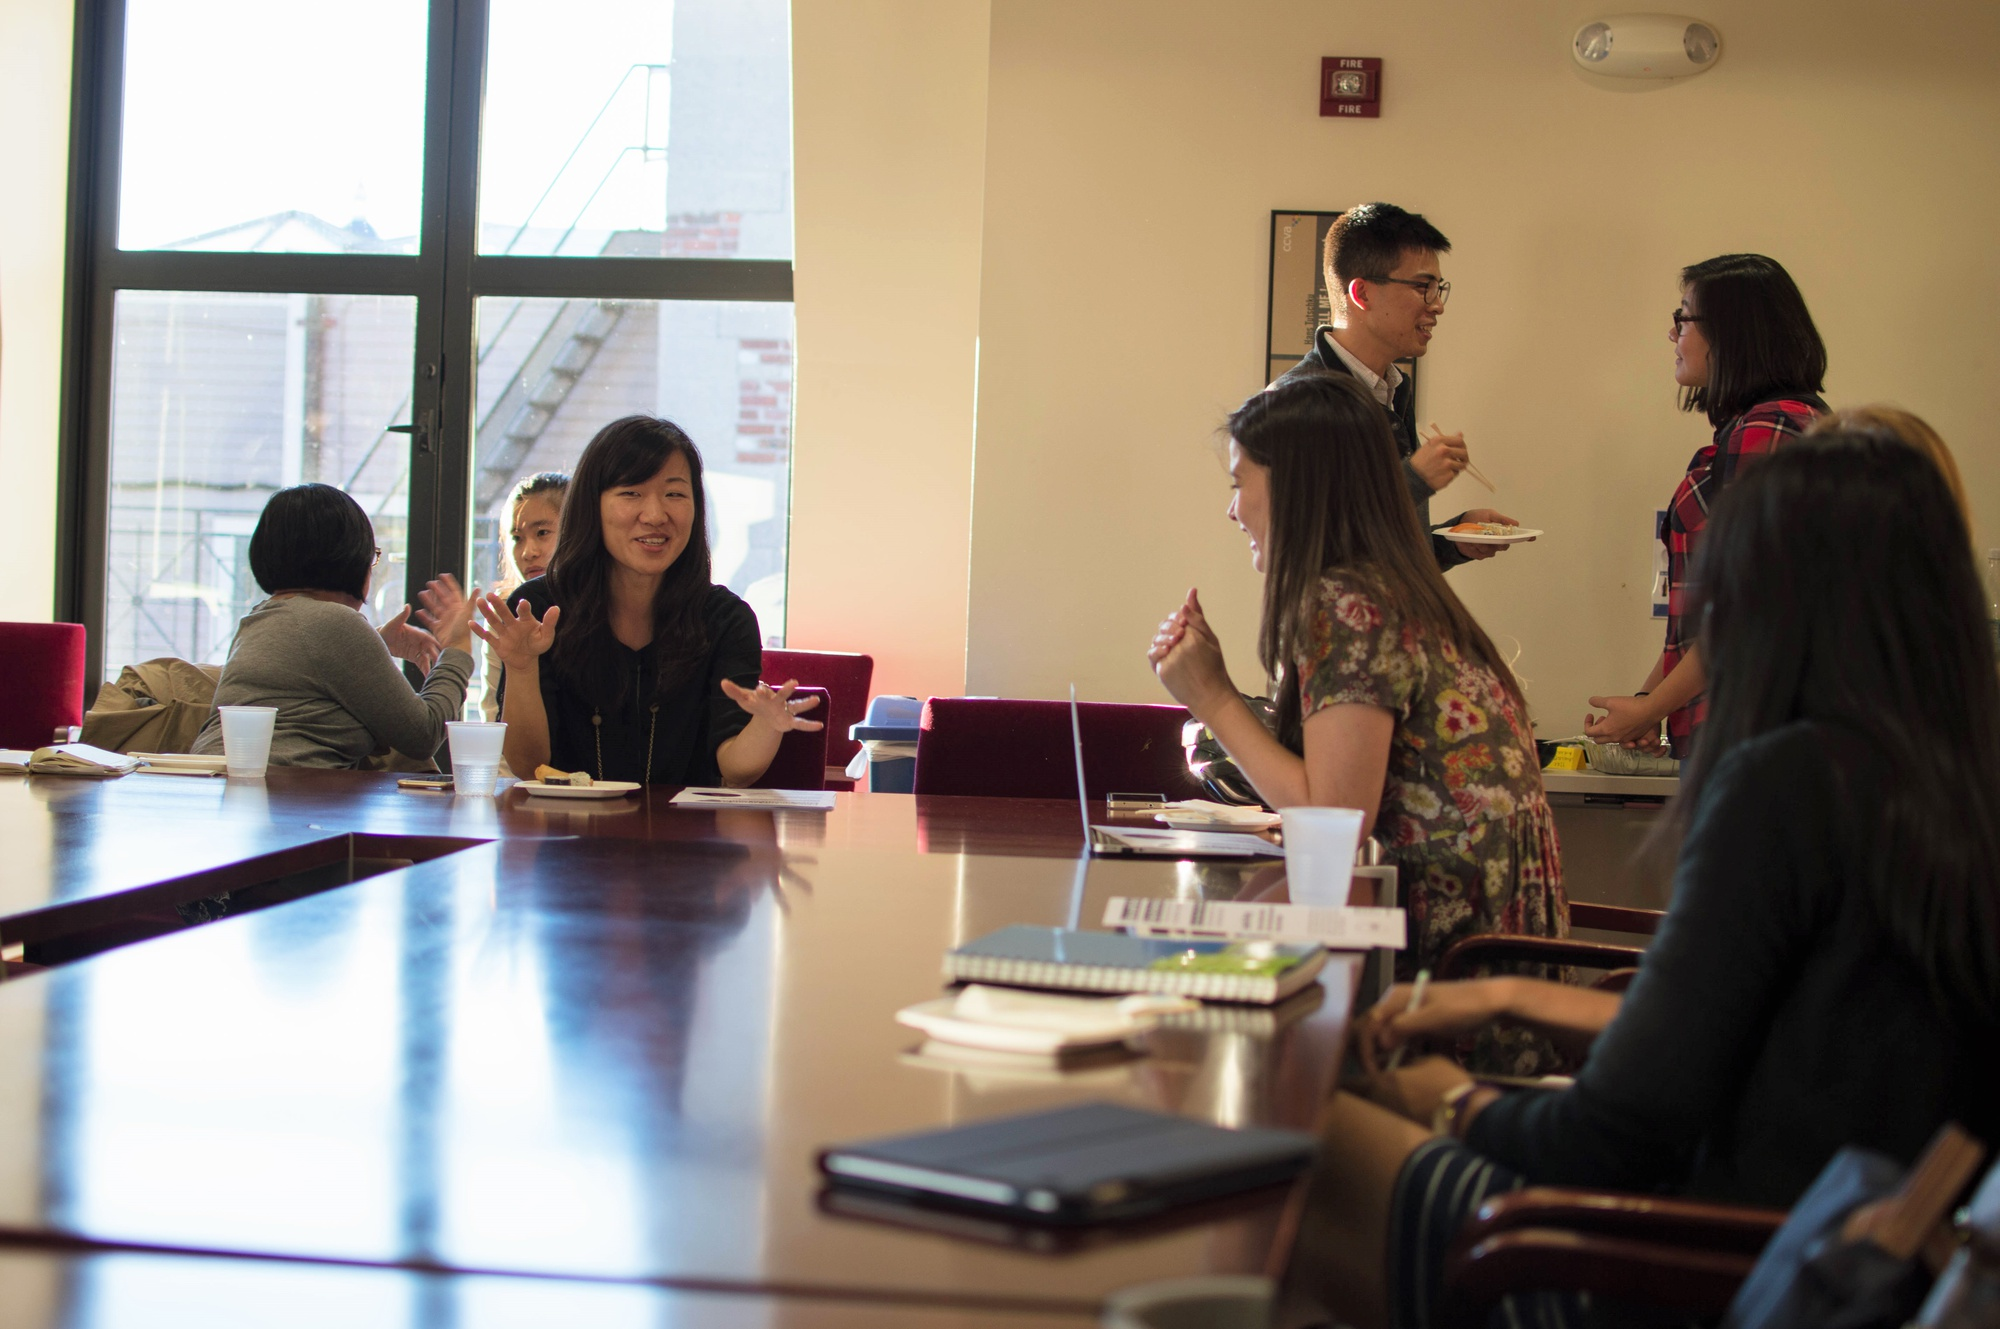 Undergraduates, graduates, and faculty alike discuss the intended goals and structure of the Asian American studies working group in the organization's first meeting on Thursday afternoon